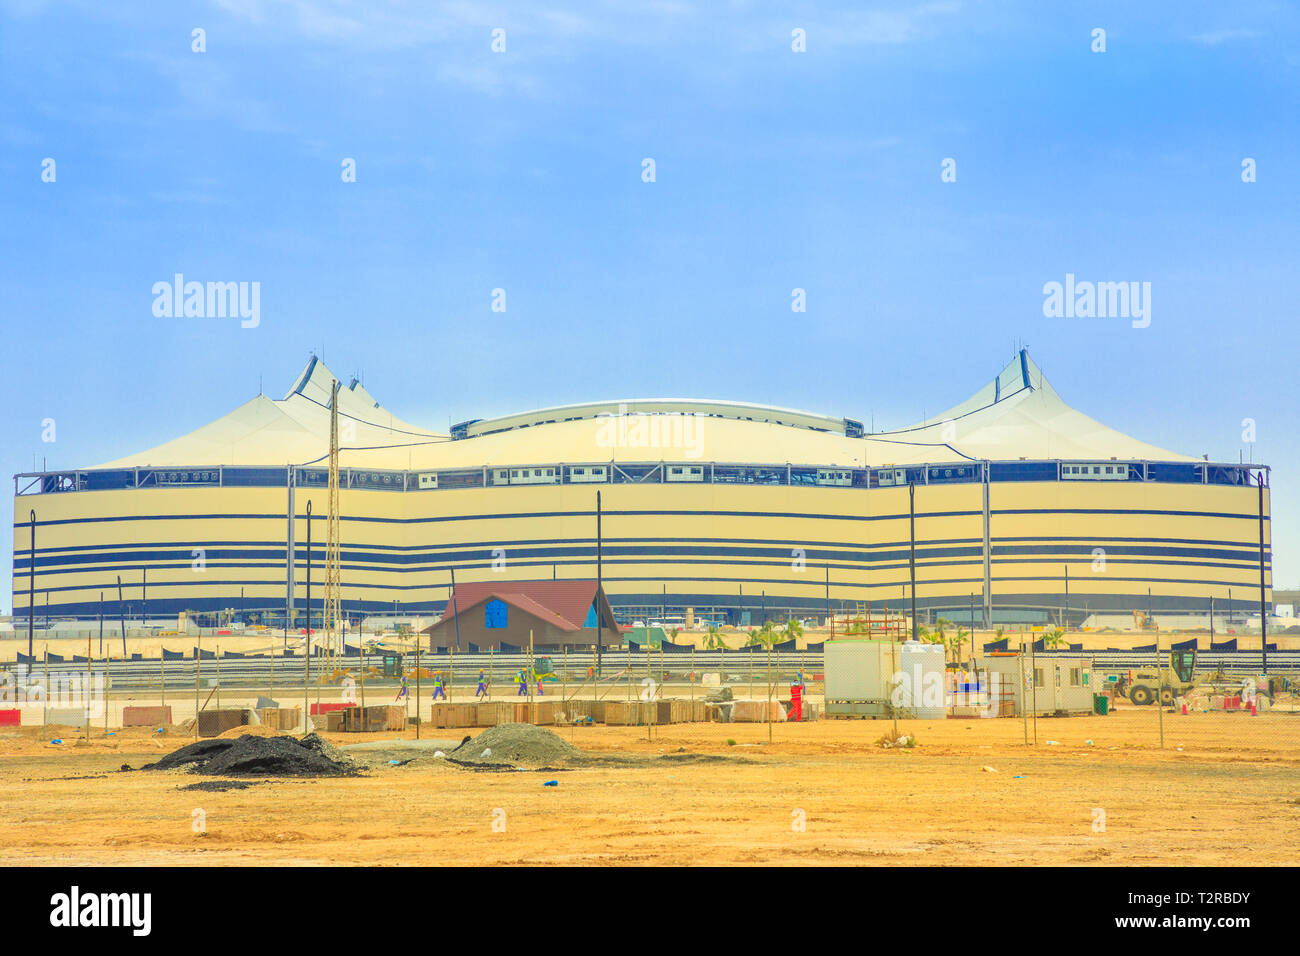 Al Khor, Qatar - February 23, 2019: closeup of At Bayt Stadium with work in progress, in Al Khor City, one of 12 venues used in 2022 FIFA World Cup. C - Stock Image